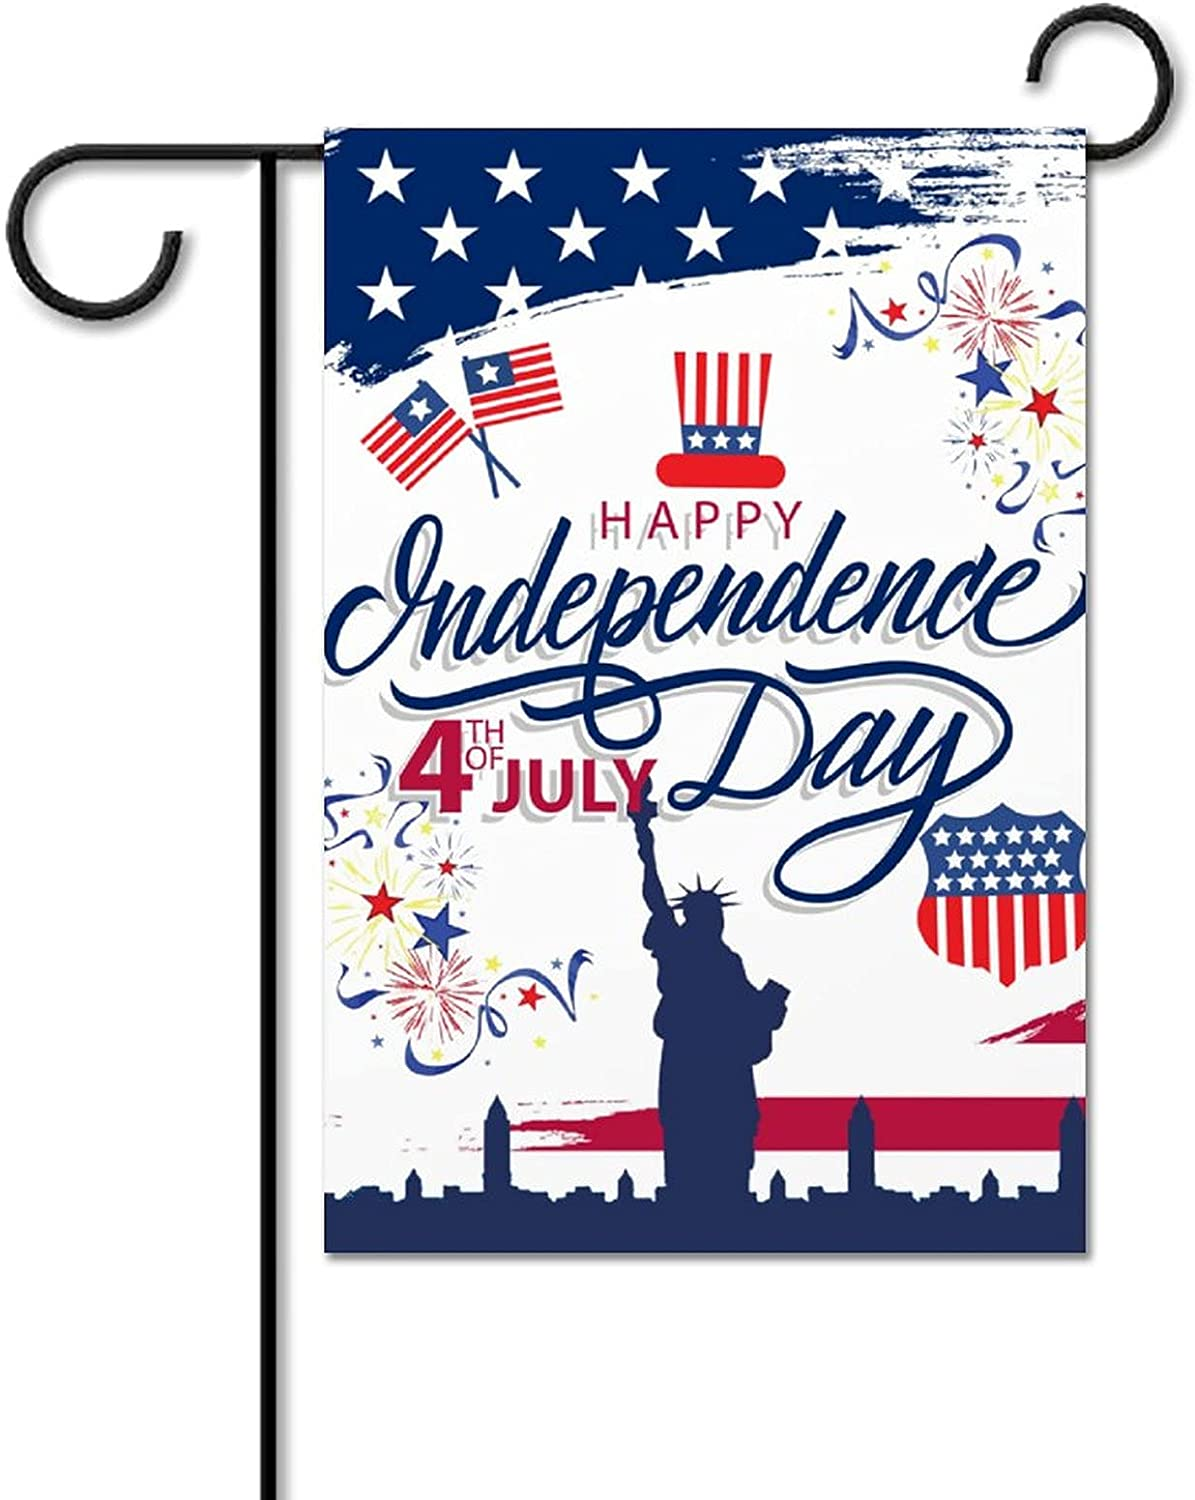 Independence Day 4th of July Double Sided Garden Flag American flag Outdoor Decorative Flag 12*18 Inches Memorial Patriotic Star Statue of Liberty house Flag Yard for Homes and Gardens